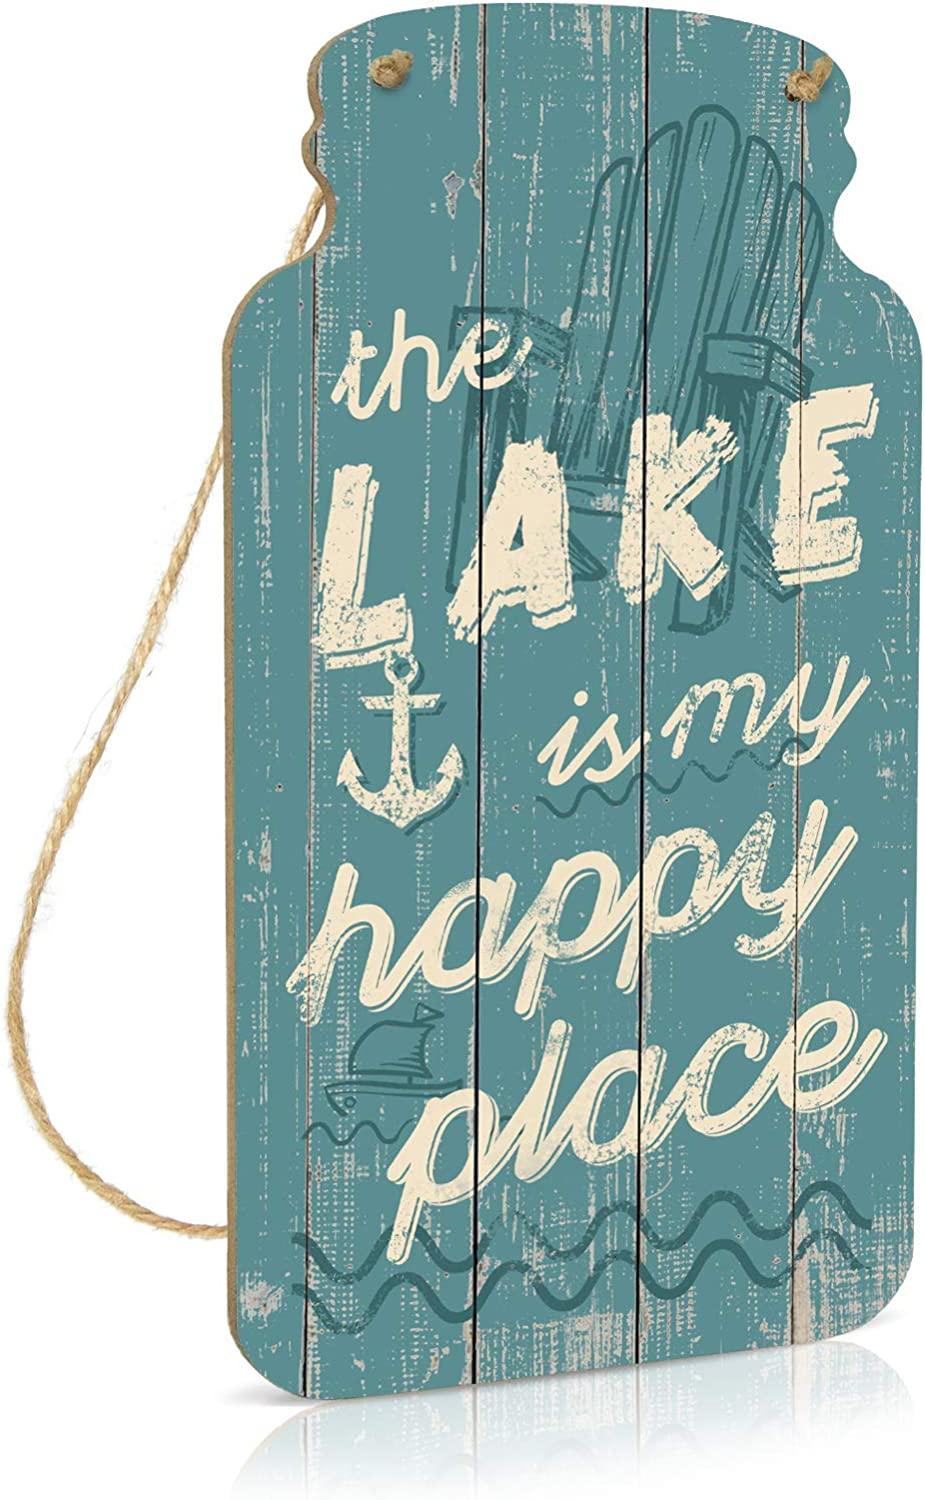 Putuo Decor Lake House Decor, Country Wall Decor for Home, Farmhouse, Living Room, Cafes Pubs, Kitchen, 8.3x4.5 Inches Mason Jar Wood Hanging Plaque Sign - The Lake is My Happy Place